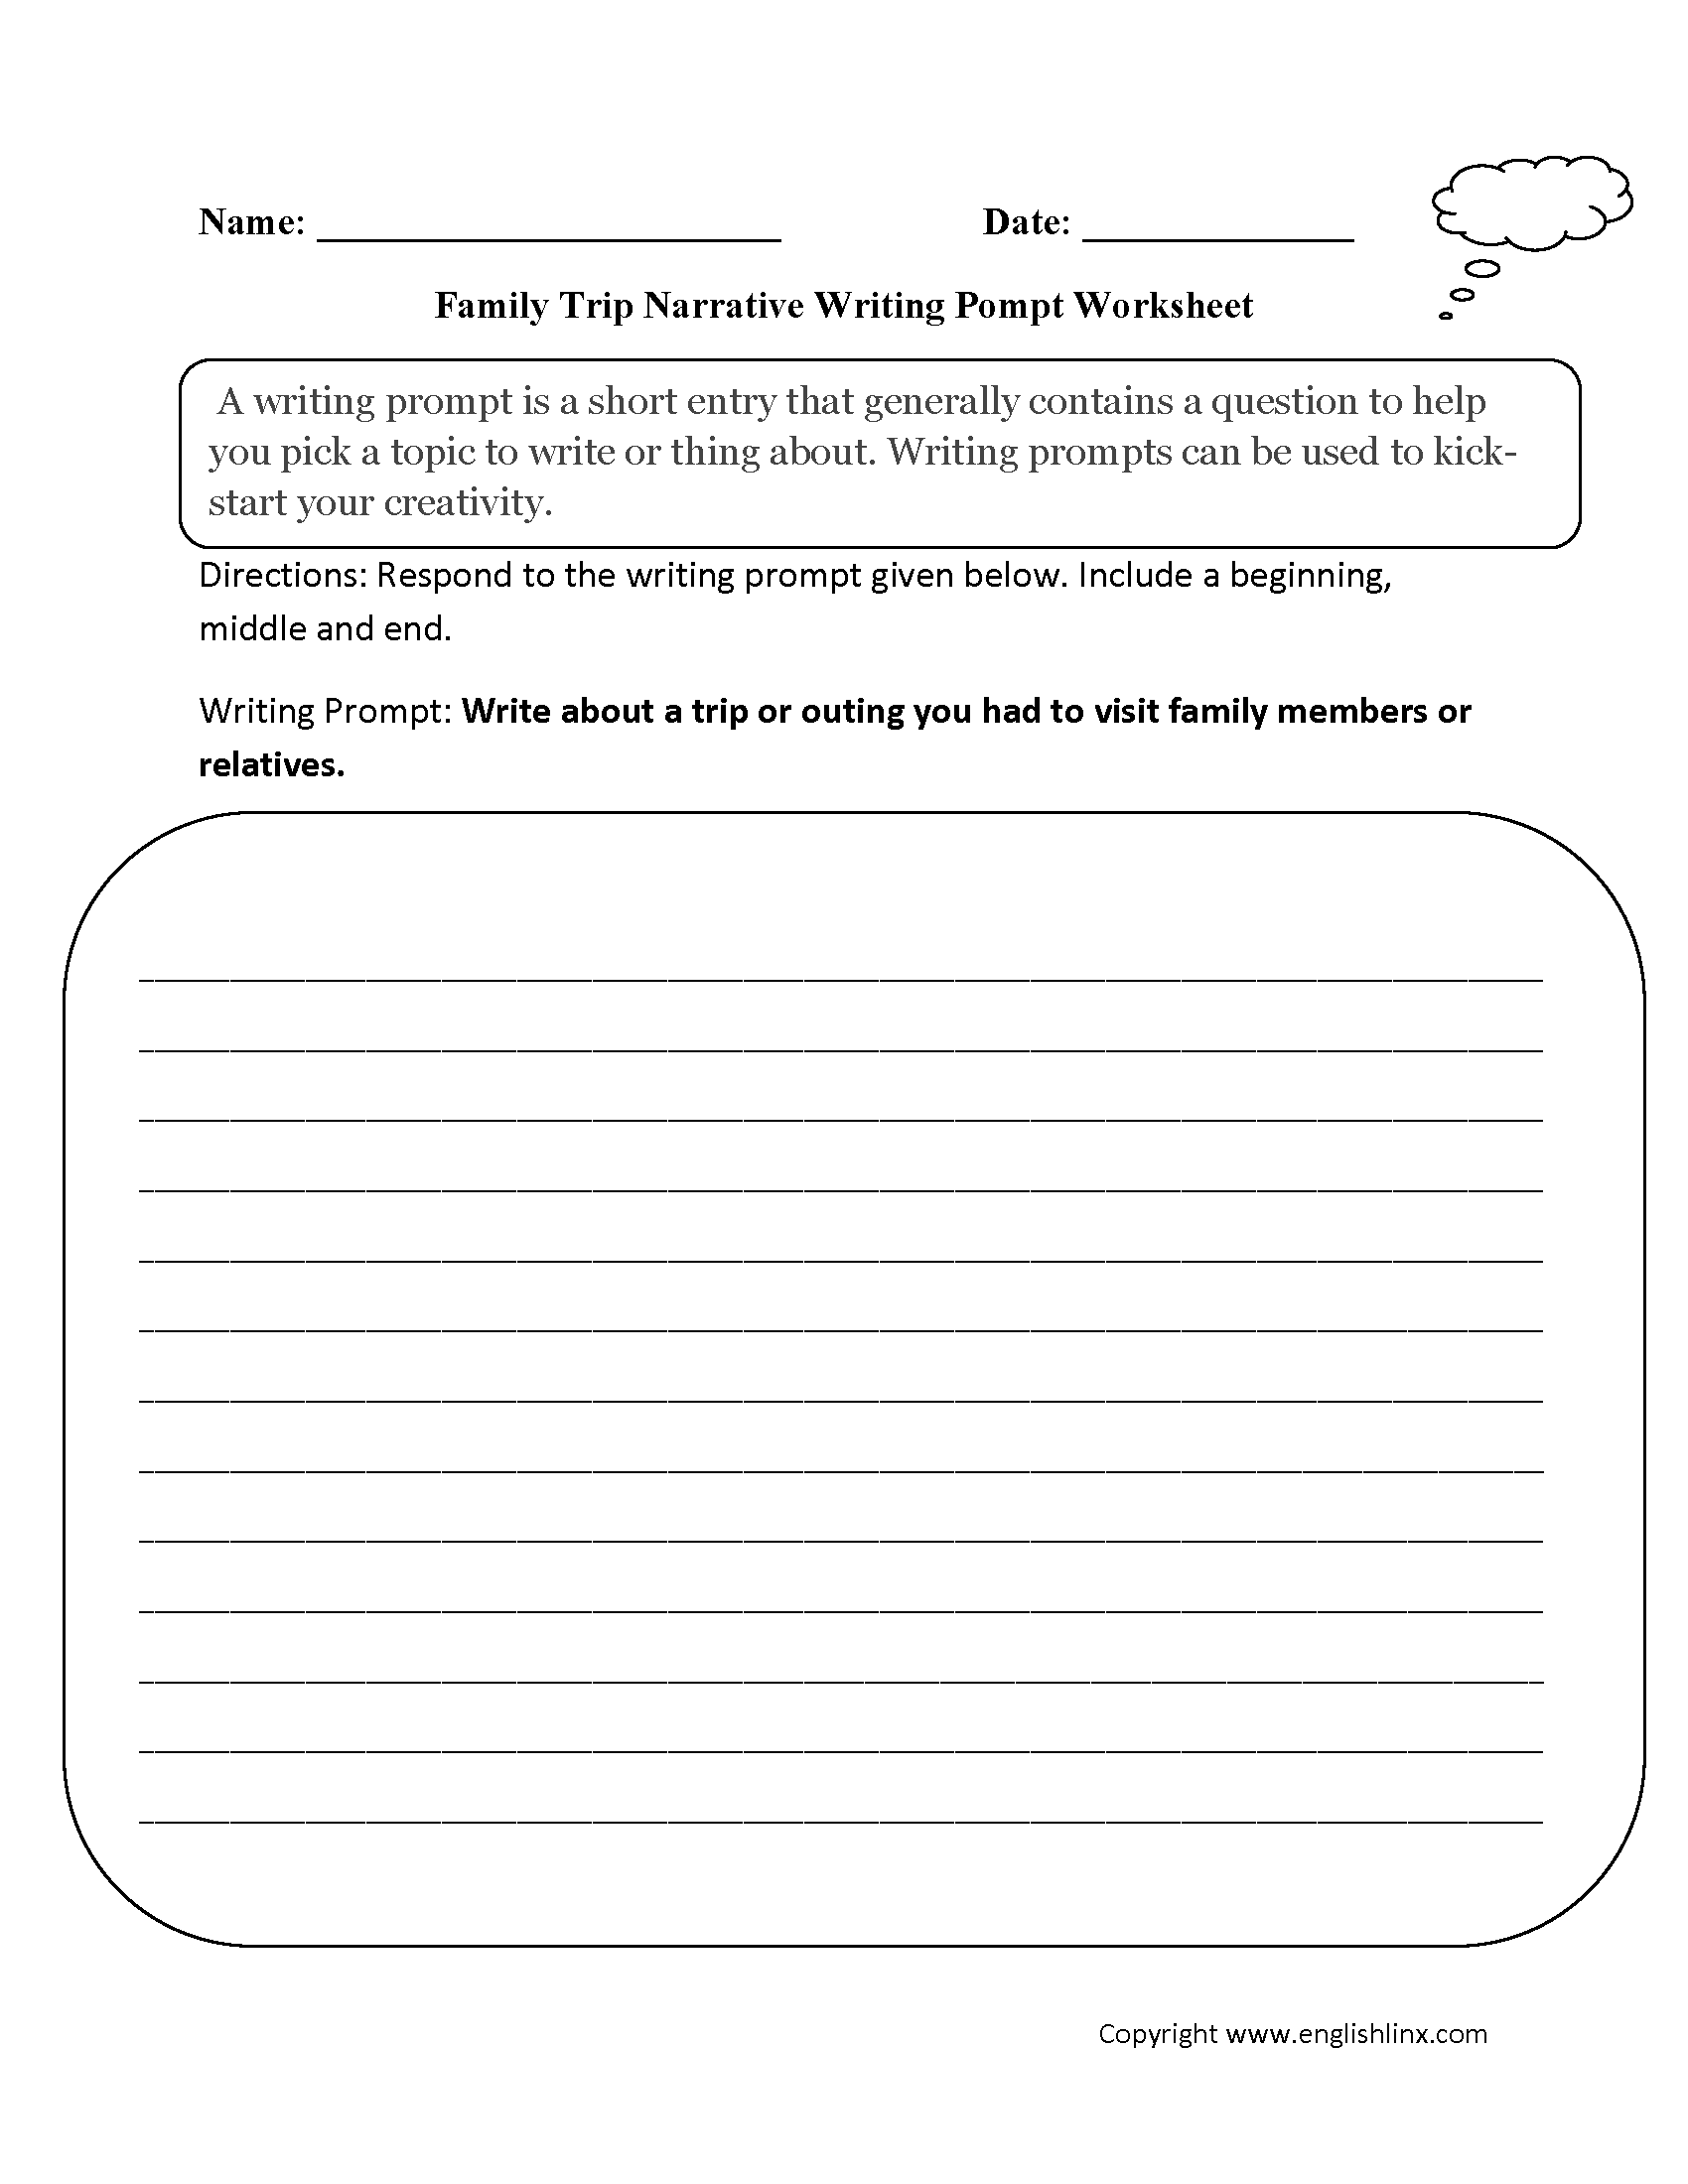 Creative Writing Worksheets For Grade 6